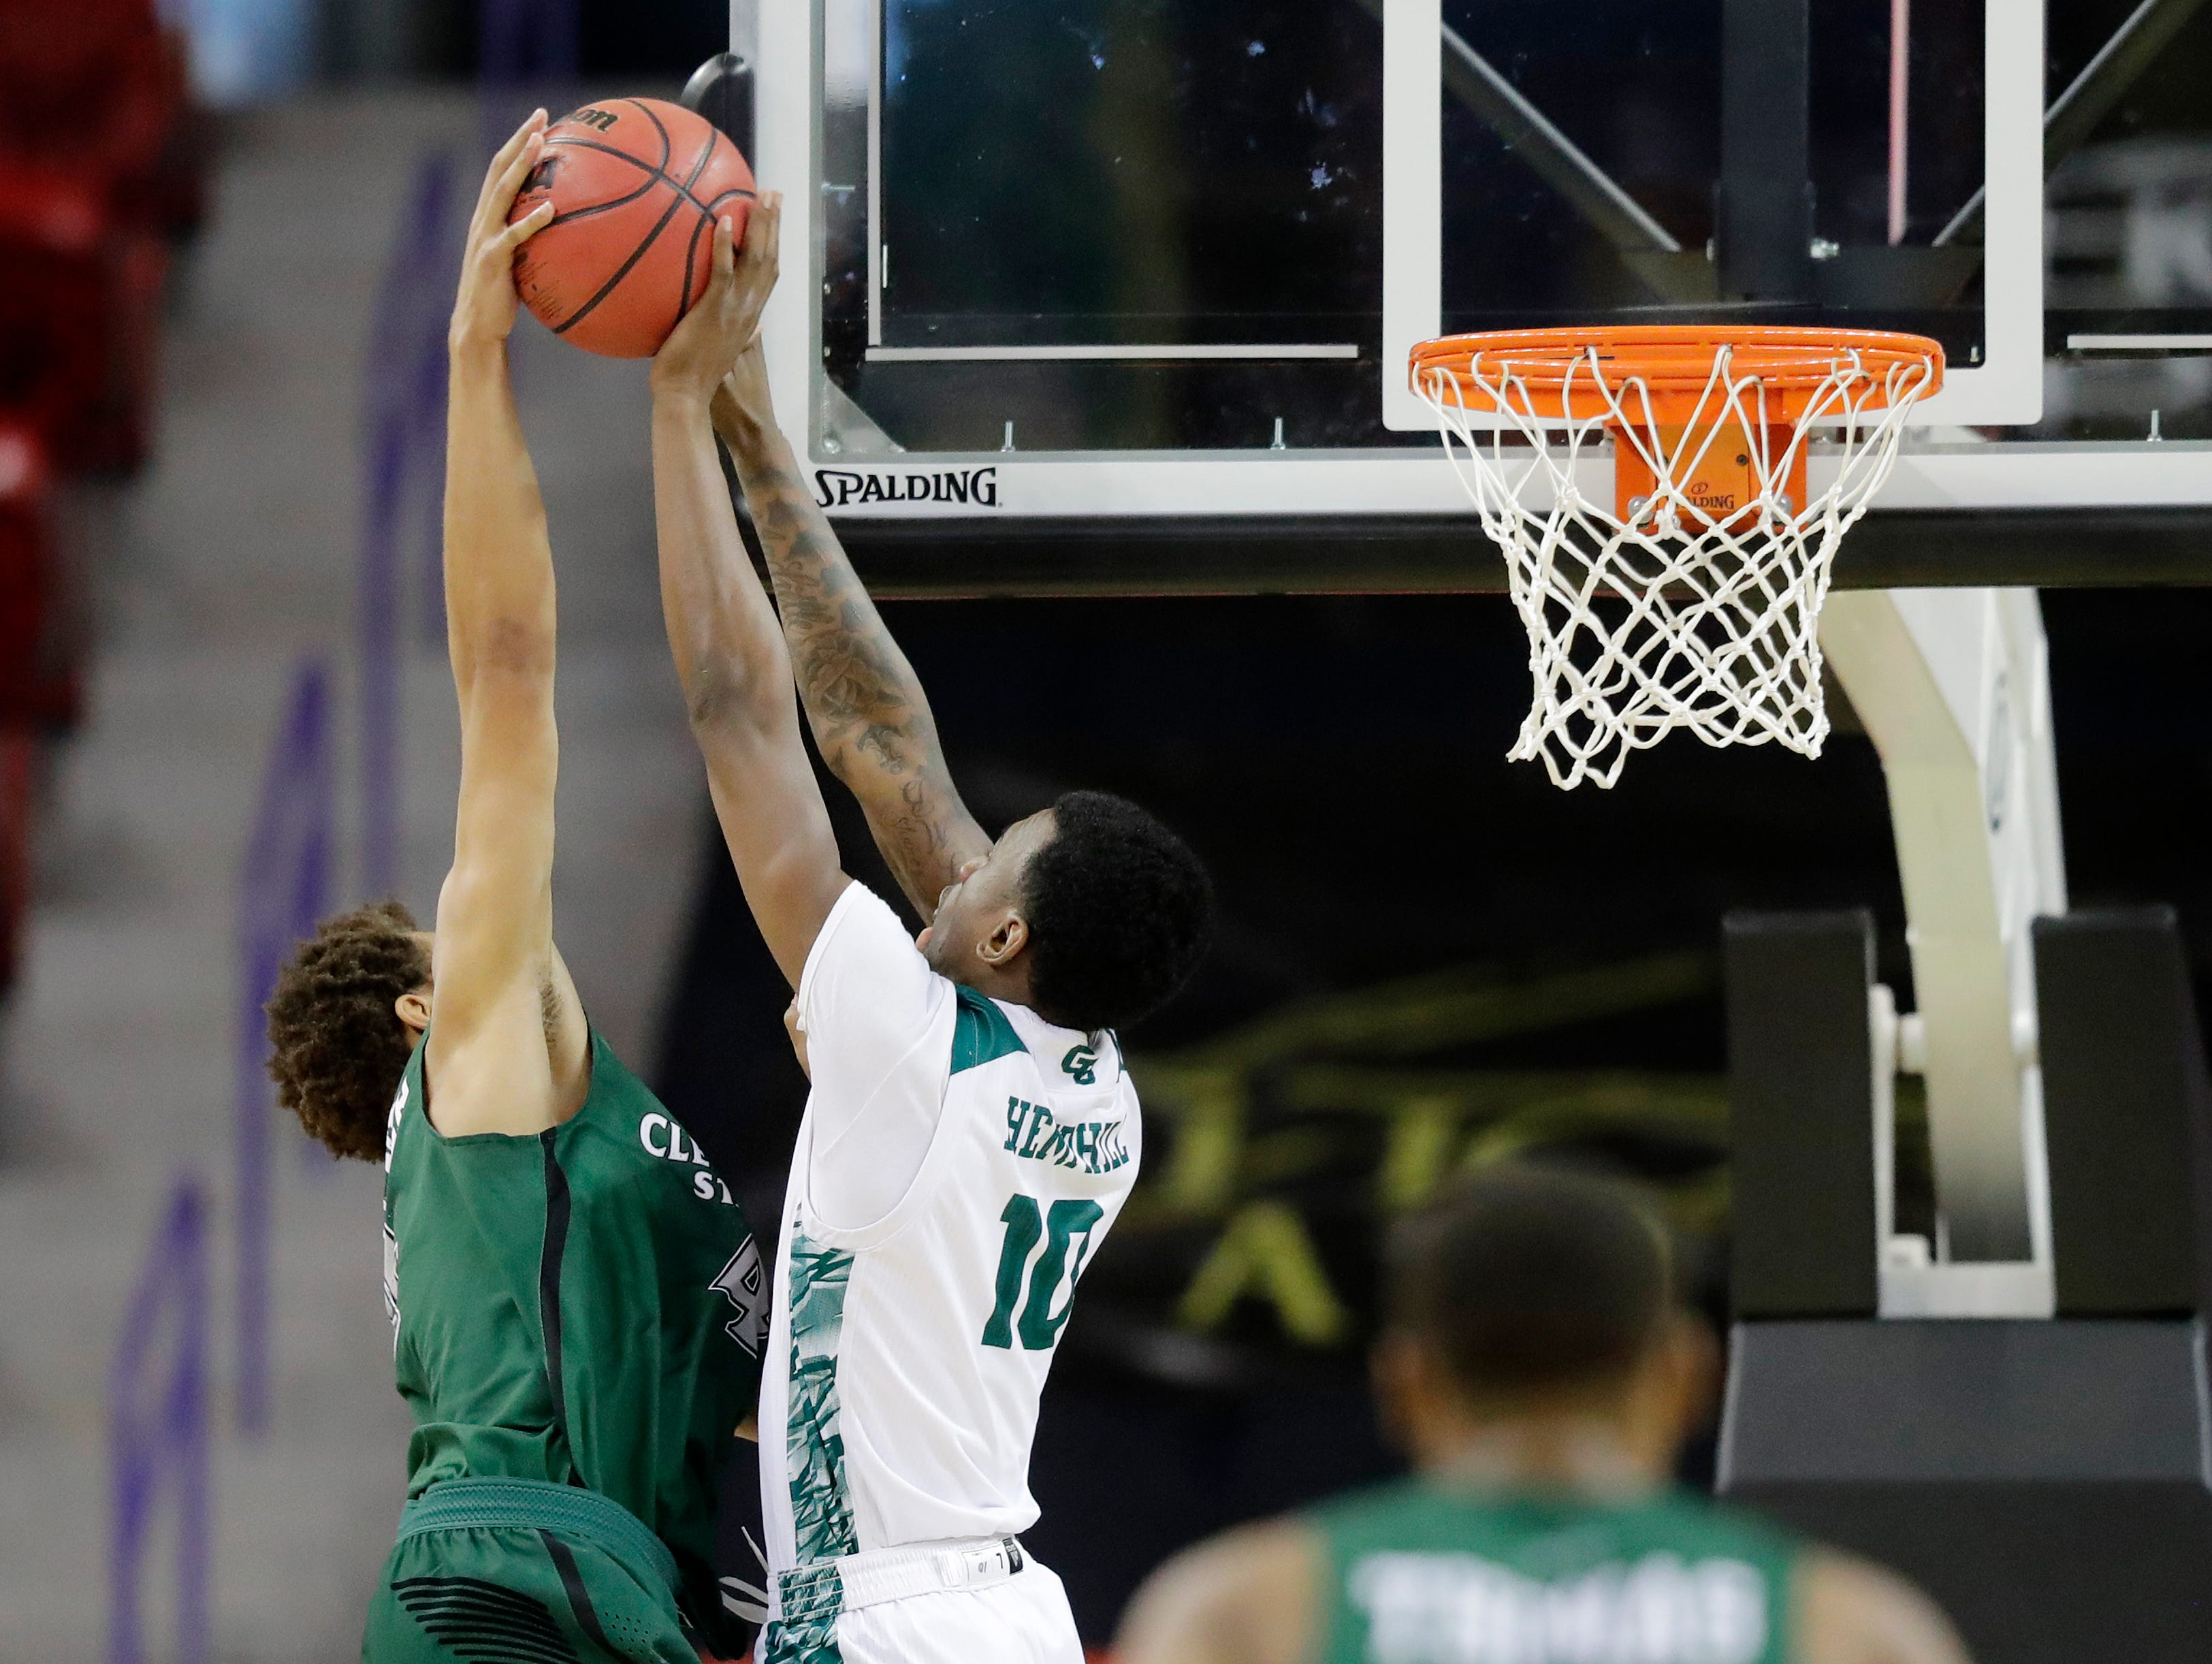 Green Bay Phoenix forward Shanquan Hemphill (10) blocks Cleveland State Vikings forward Seth Millner (4) in a Horizon League basketball game at the Resch Center on Saturday, January 5, 2019 in Green Bay, Wis.